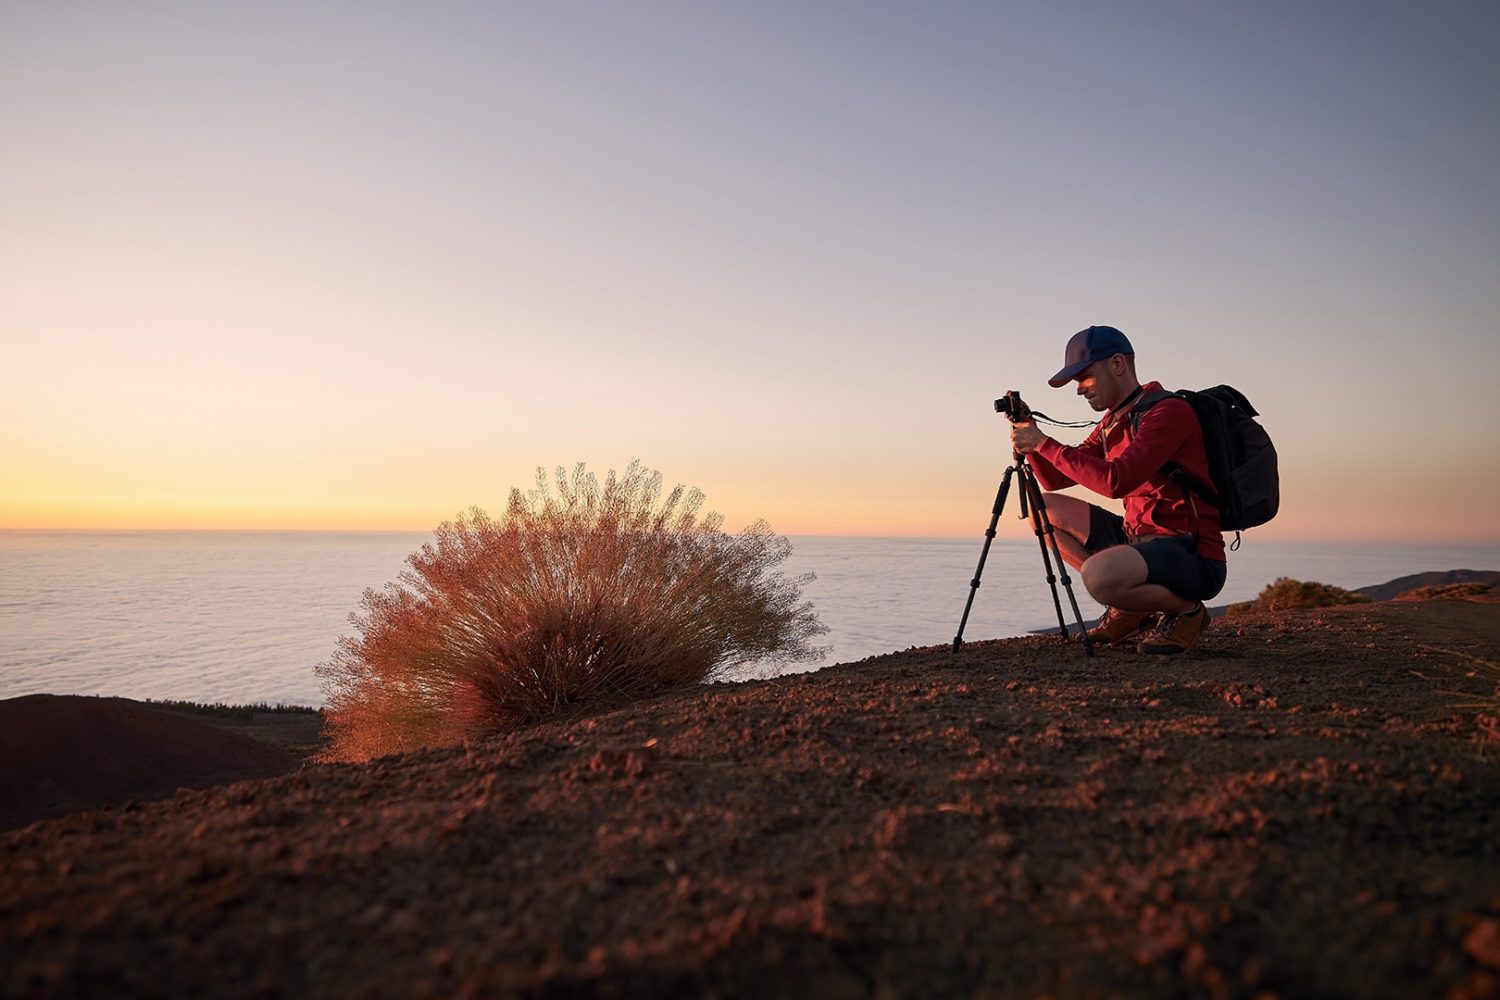 10 tips for making time for photography when you have a day job